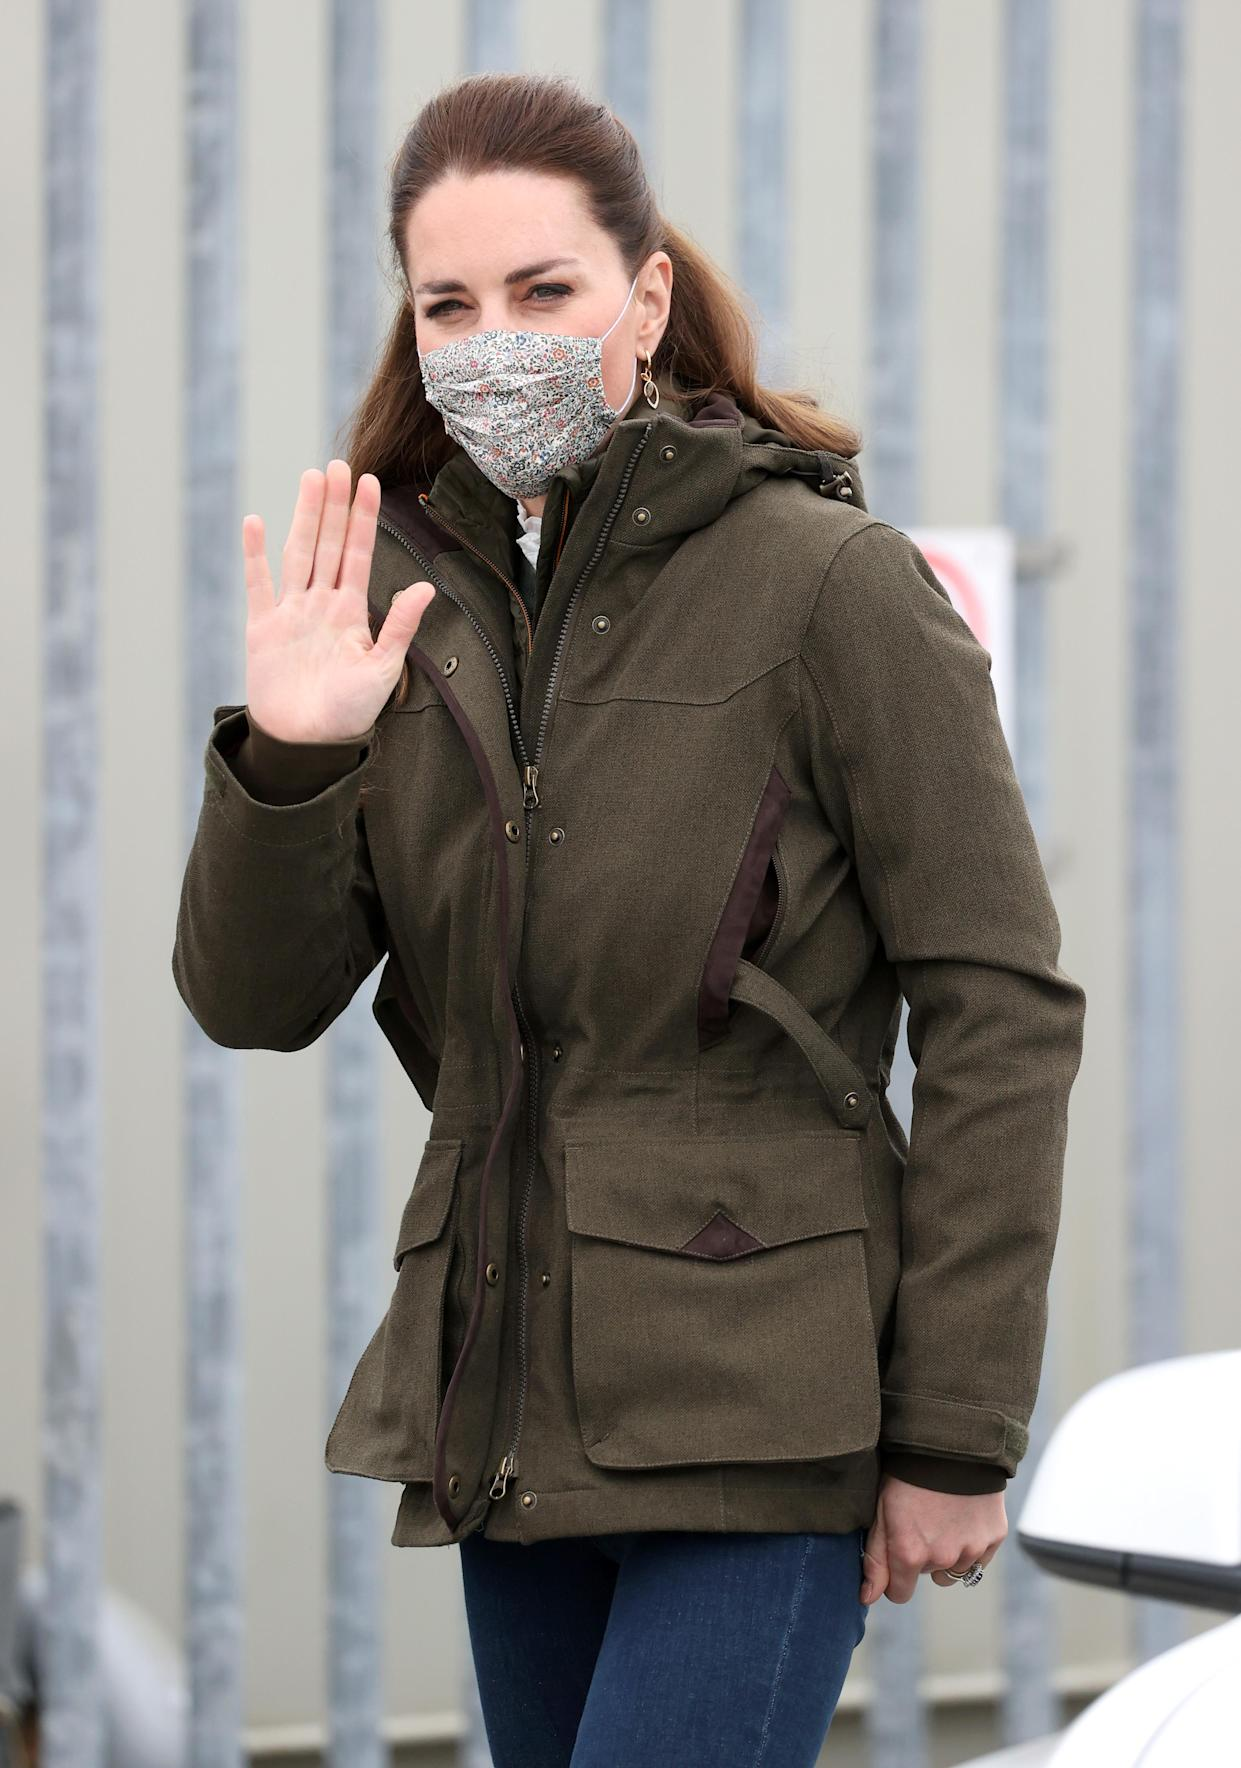 STROMNESS, SCOTLAND - MAY 25: Catherine, Duchess of Cambridge arrives for a visit to the European Marine Energy Centre with Prince William, Duke of Cambridge on day five of their week long visit to Scotland on May 25, 2021 in Stromness, Scotland.  (Photo by Chris Jackson/Getty Images)